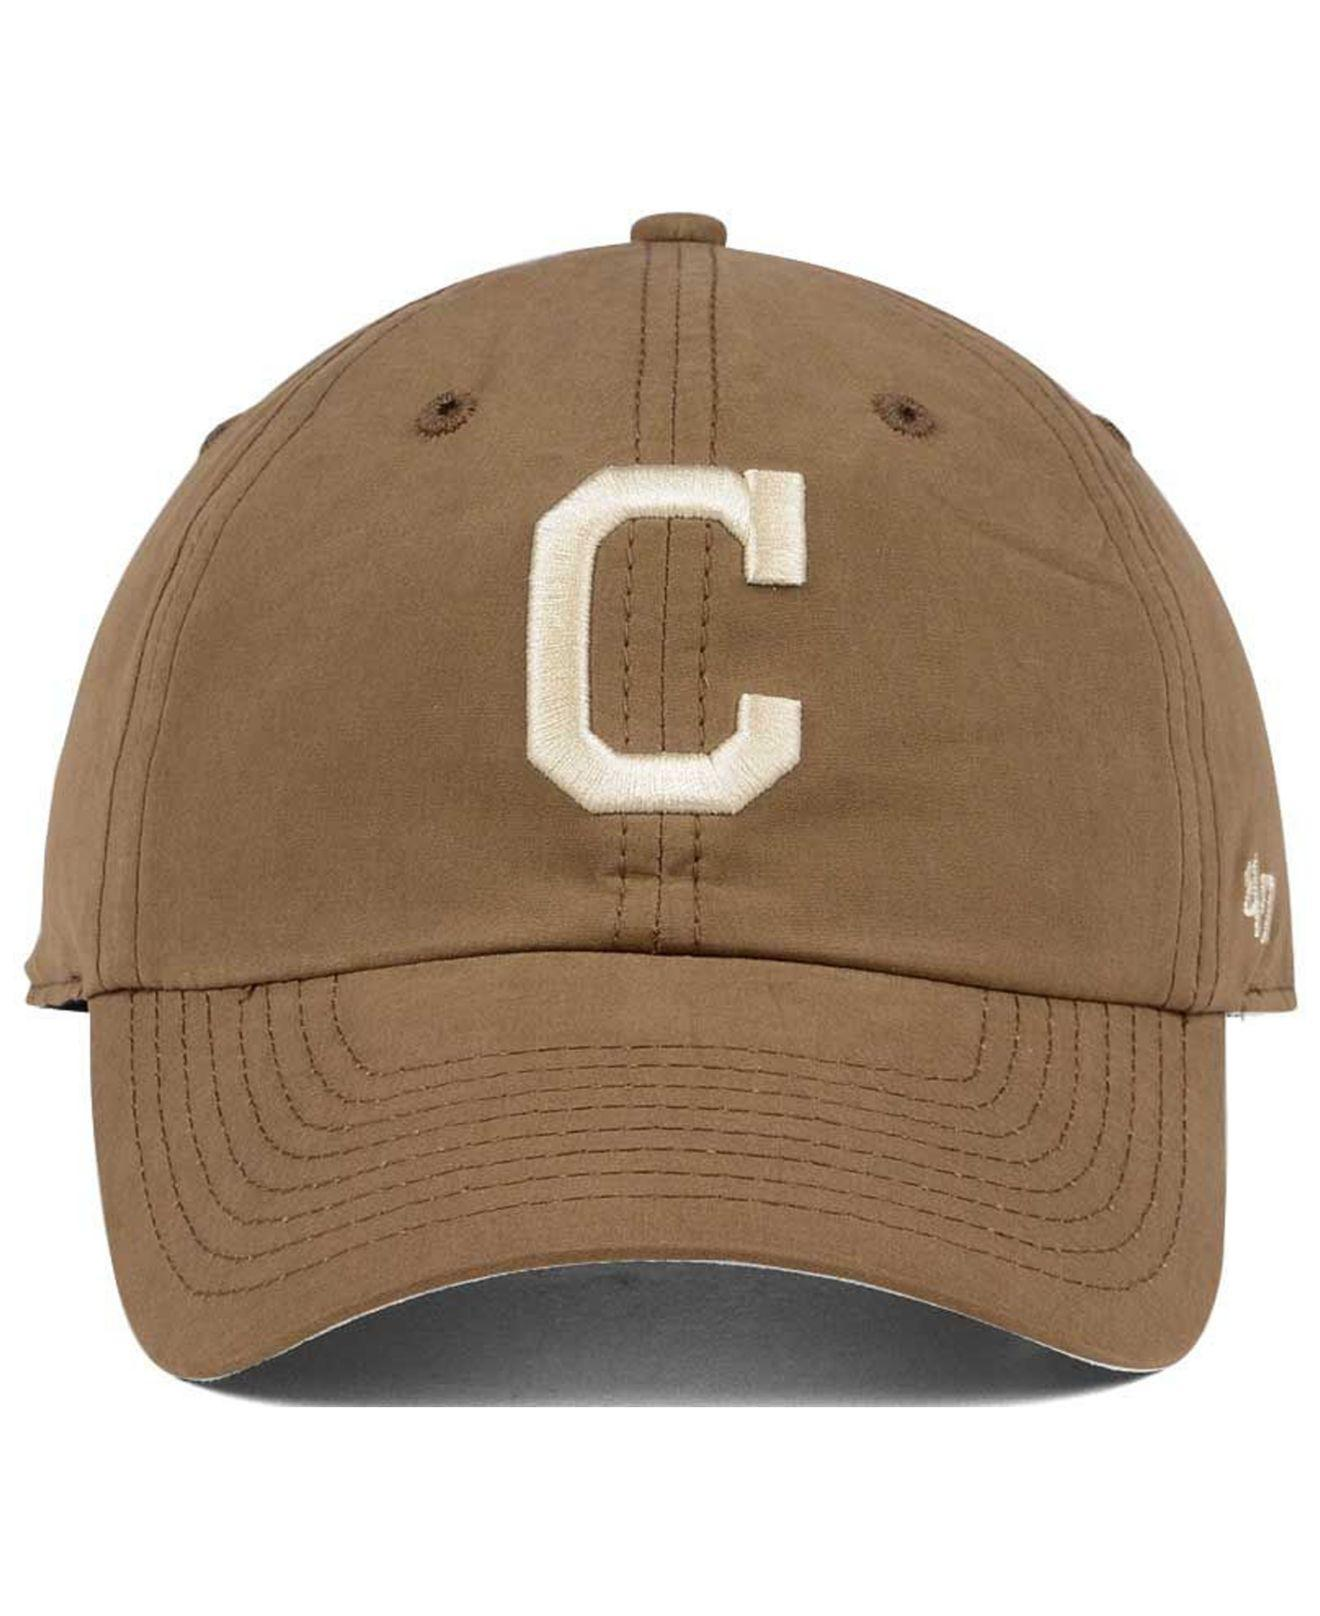 lowest price a0fb9 82b66 ... uk lyst 47 brand harvest clean up cap in brown for men 5fcf7 d888f